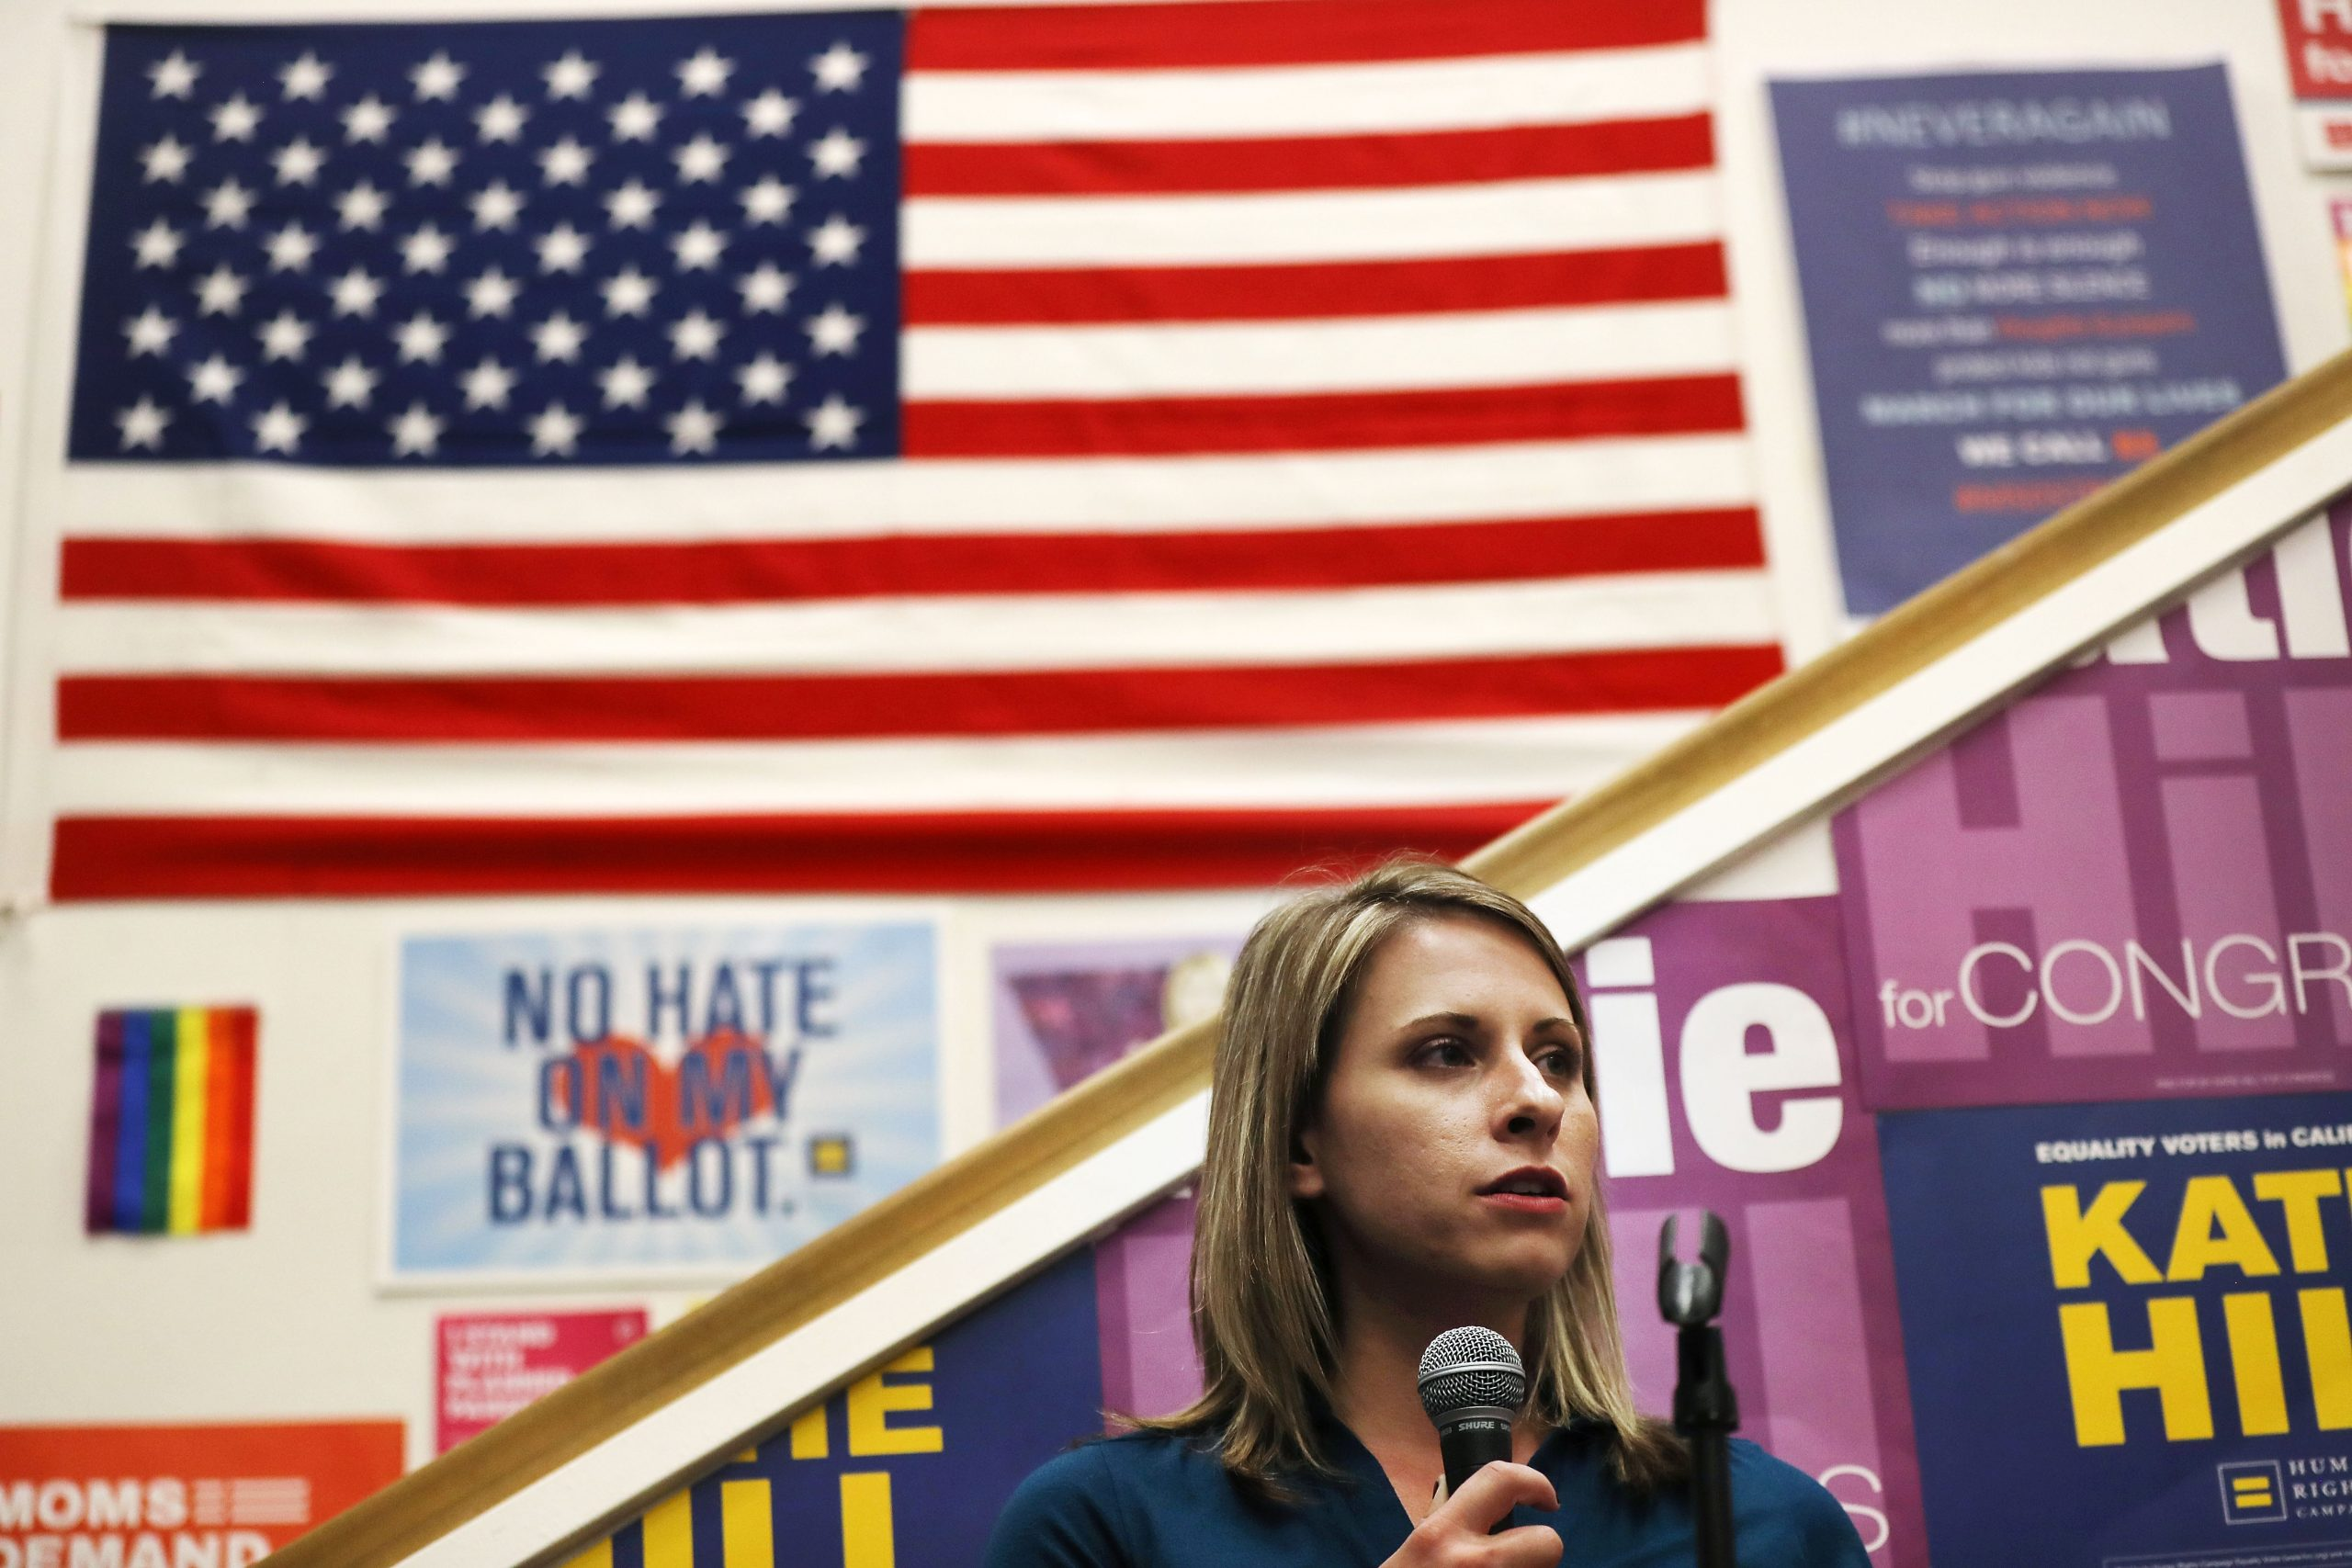 Then-Democratic Congressional candidate Katie Hill speaks to supporters at a canvass launch on Nov. 5, 2018 in Stevenson Ranch, California.